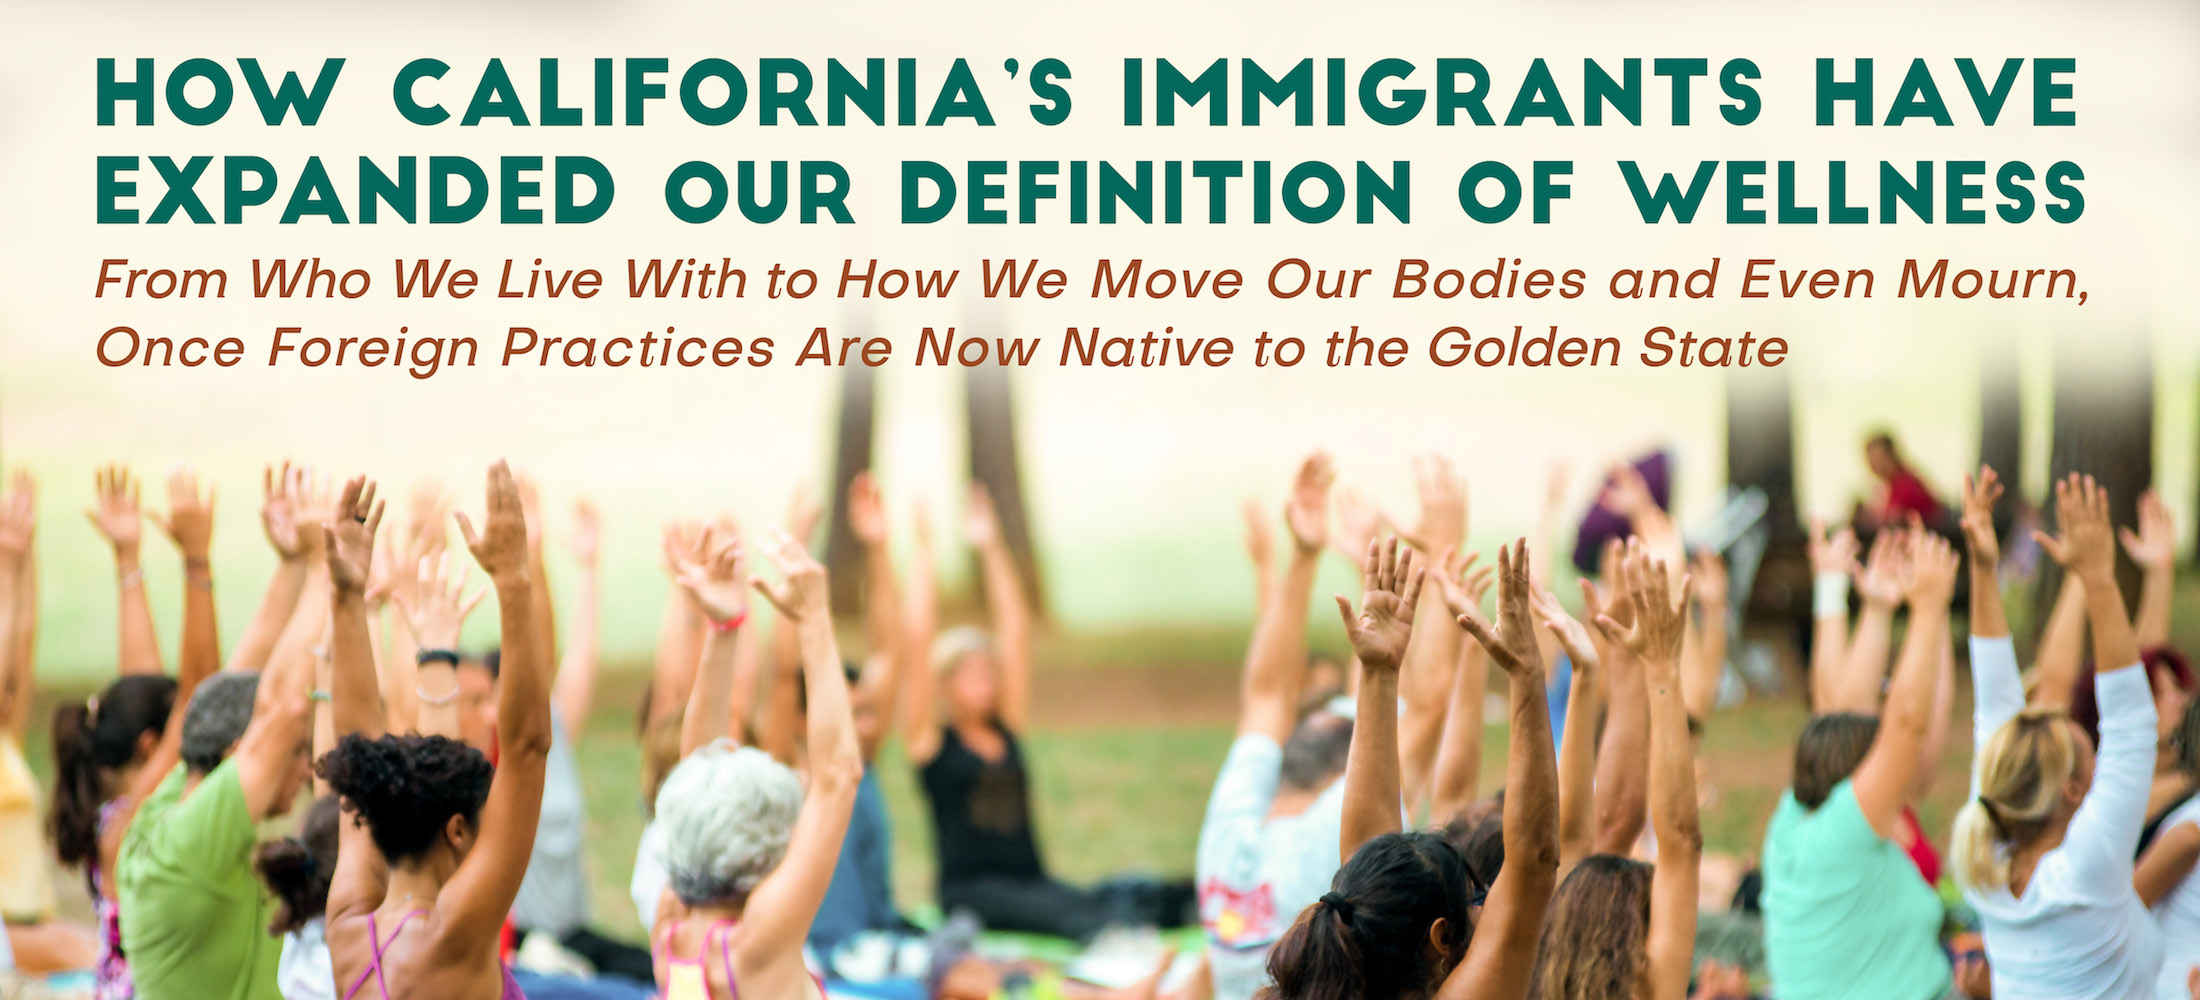 How California's Immigrants Have Expanded Our Definition of Wellness